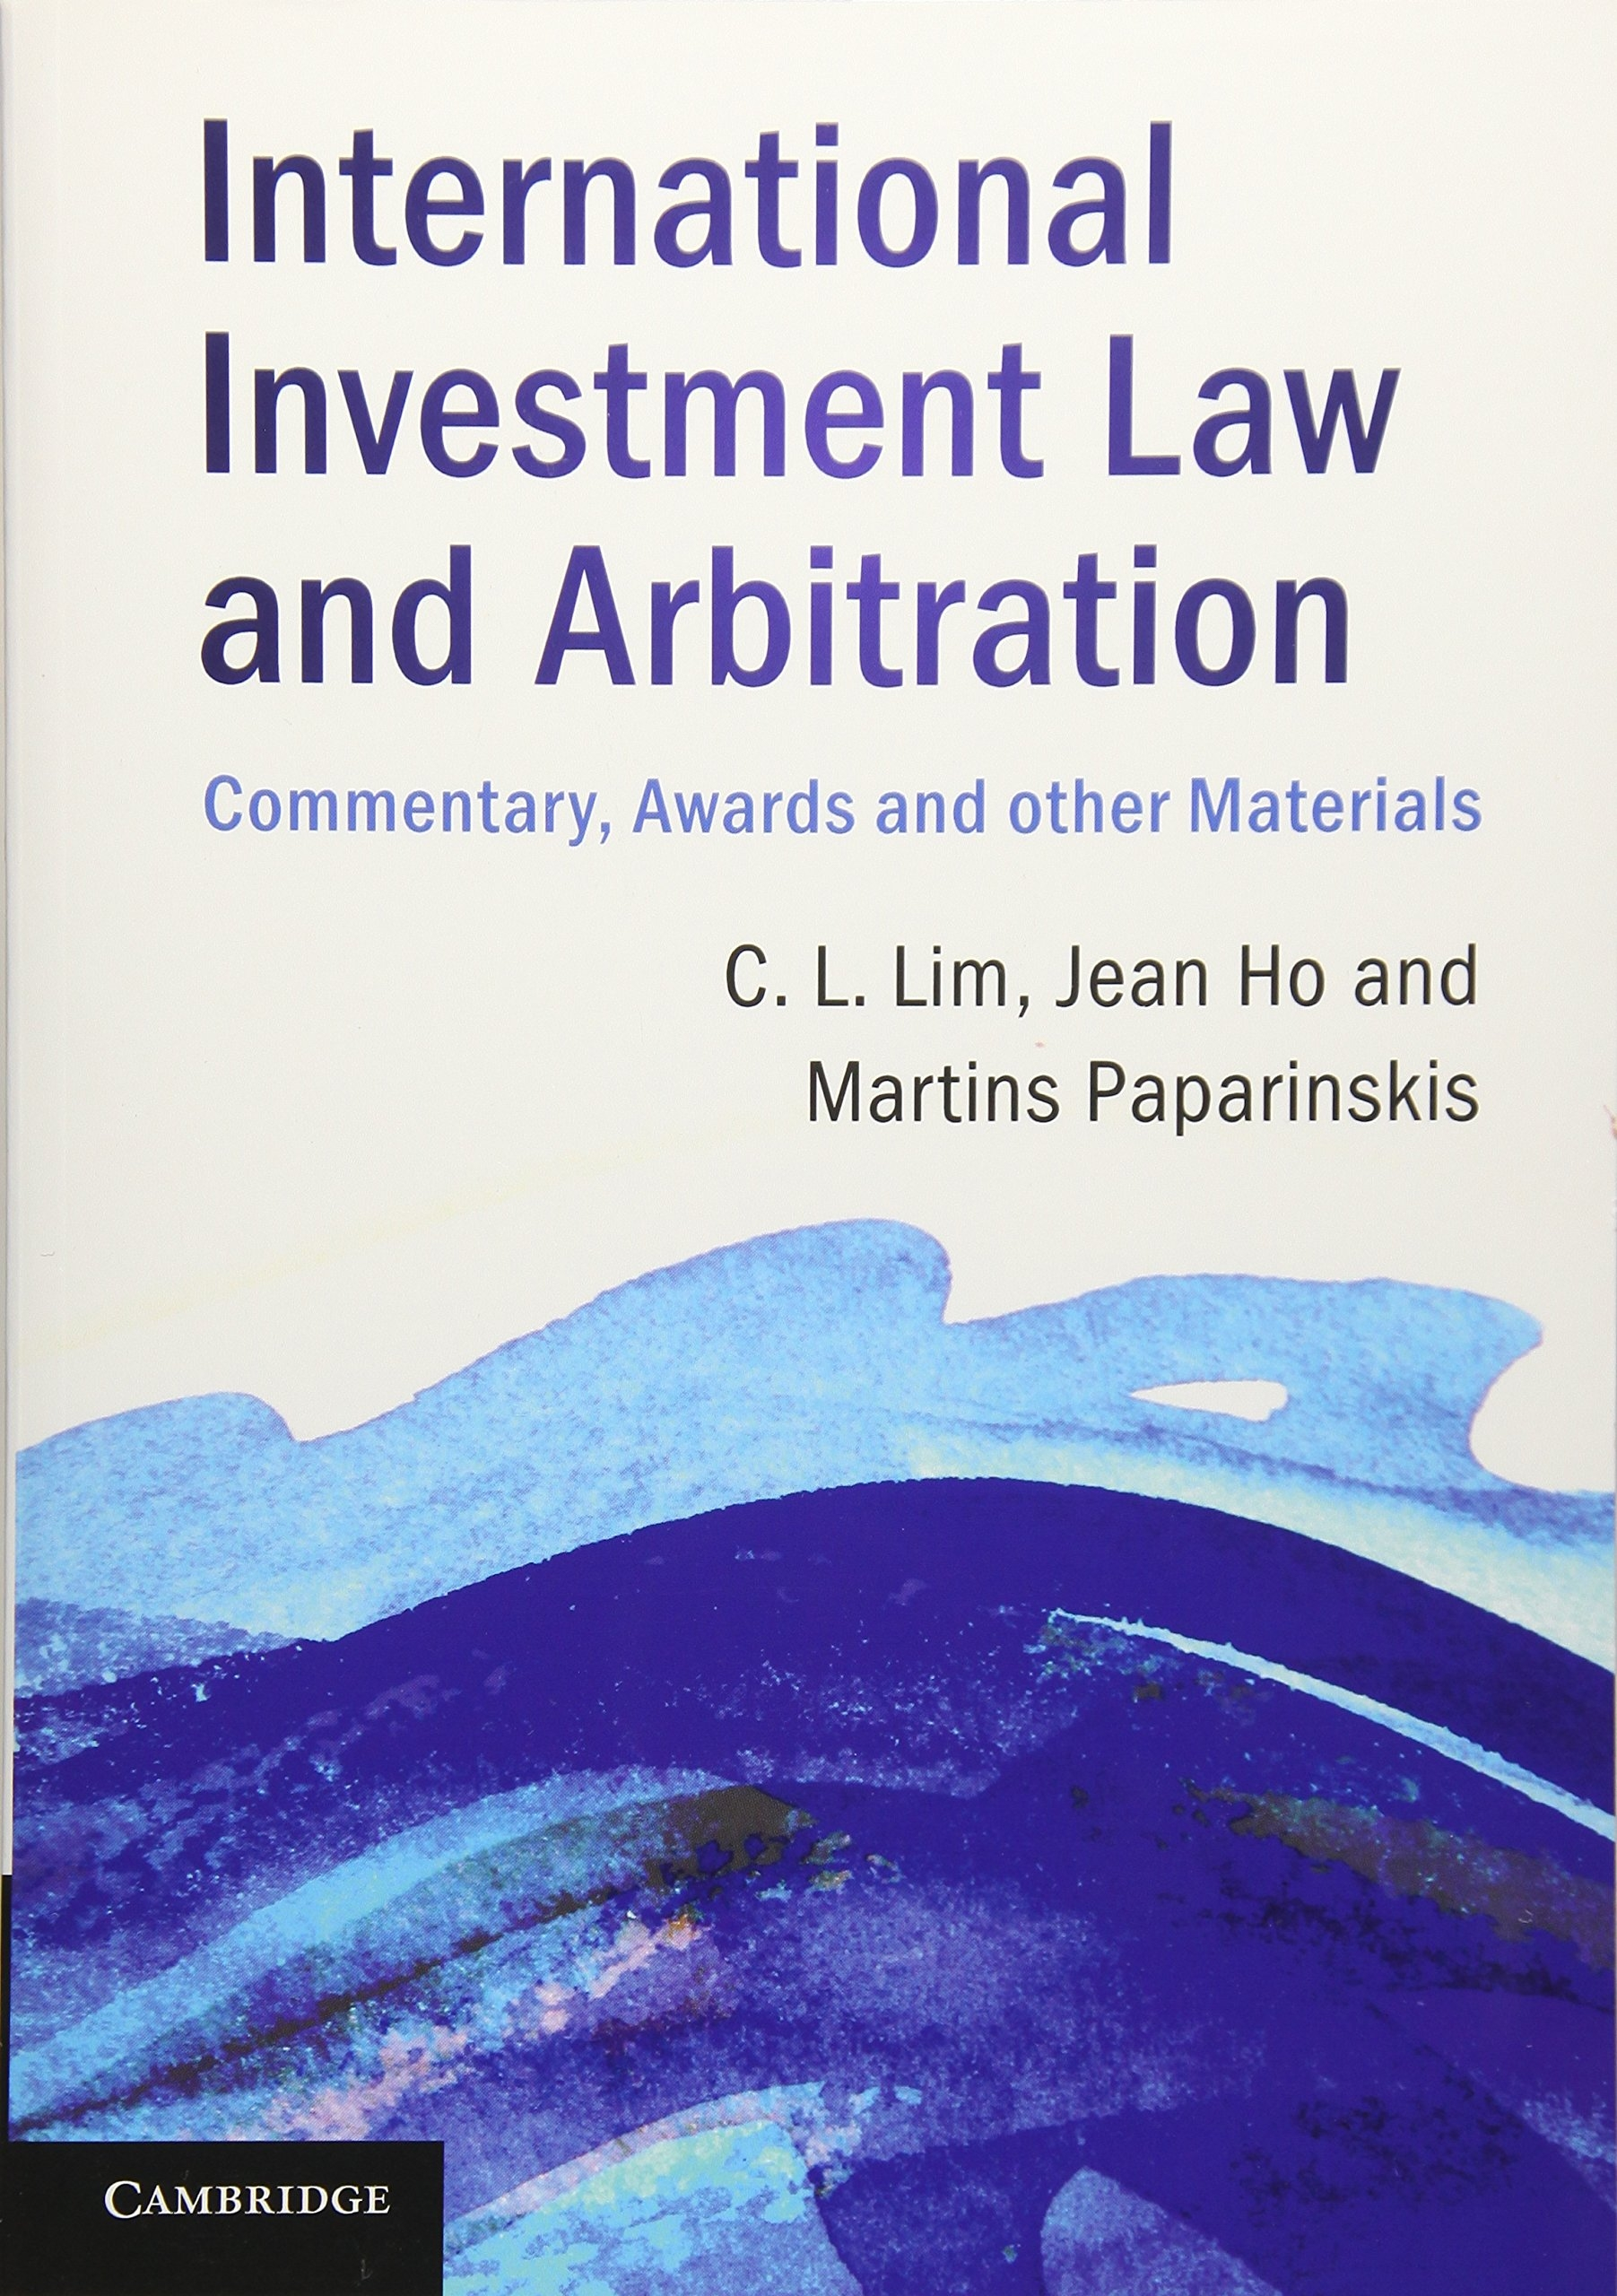 International Investment Law and Arbitration: Commentary, Awards and other Materials